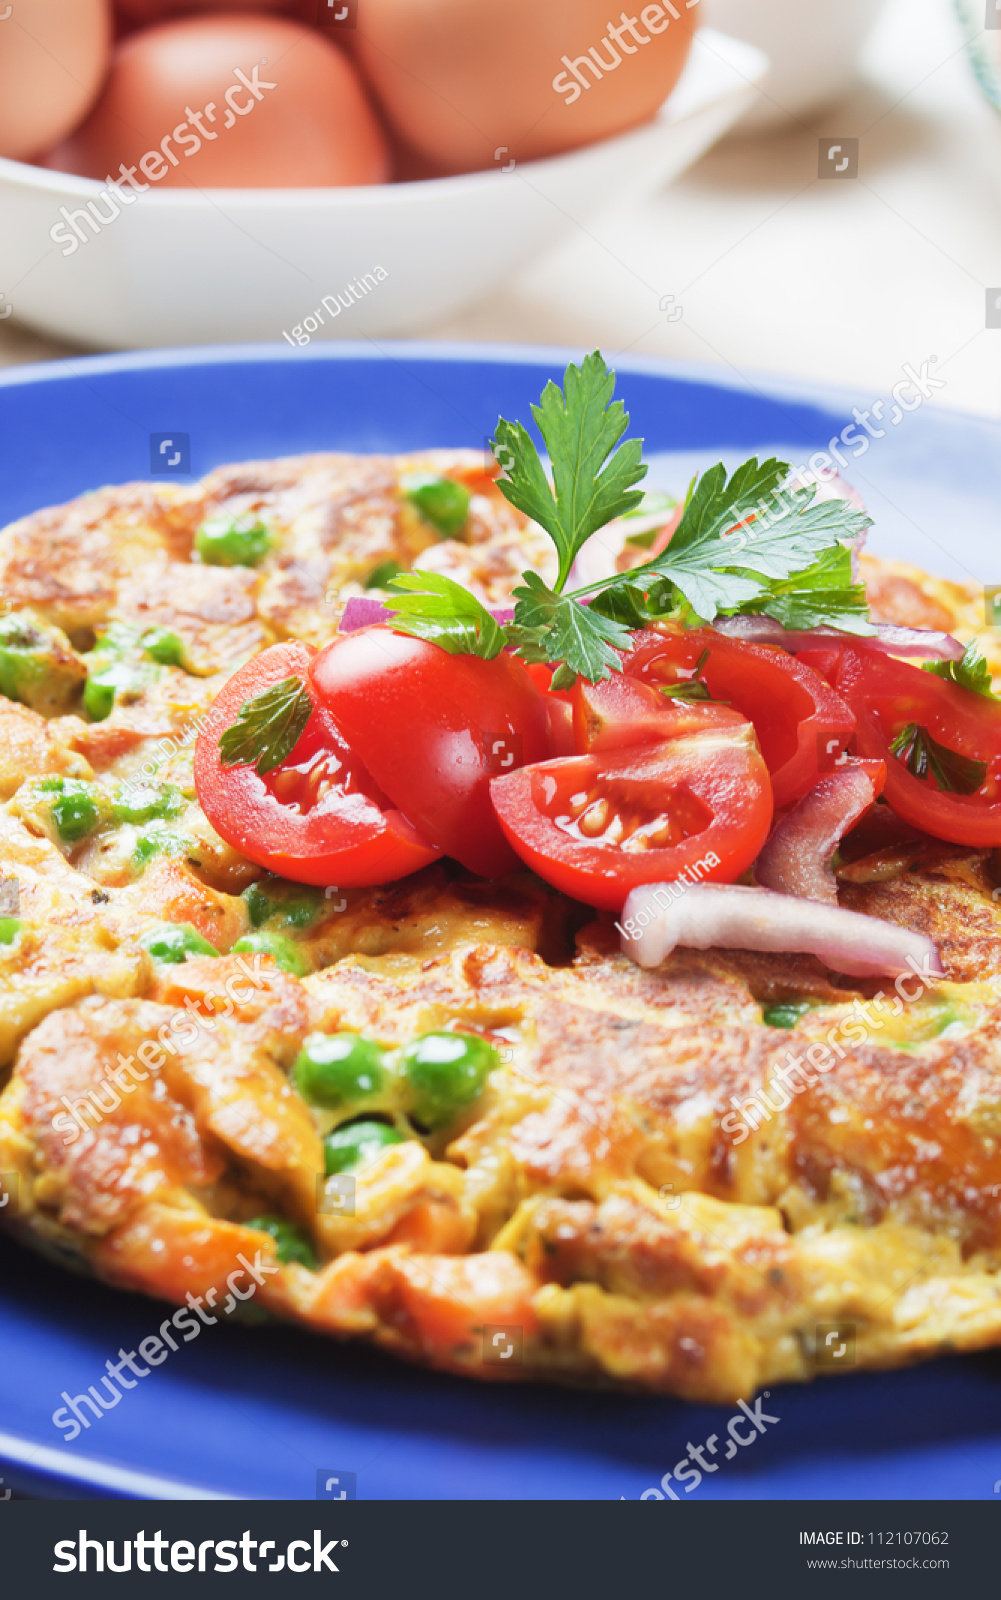 Frittata Omelet With Tomato And Onion Salad Stock Photo ...